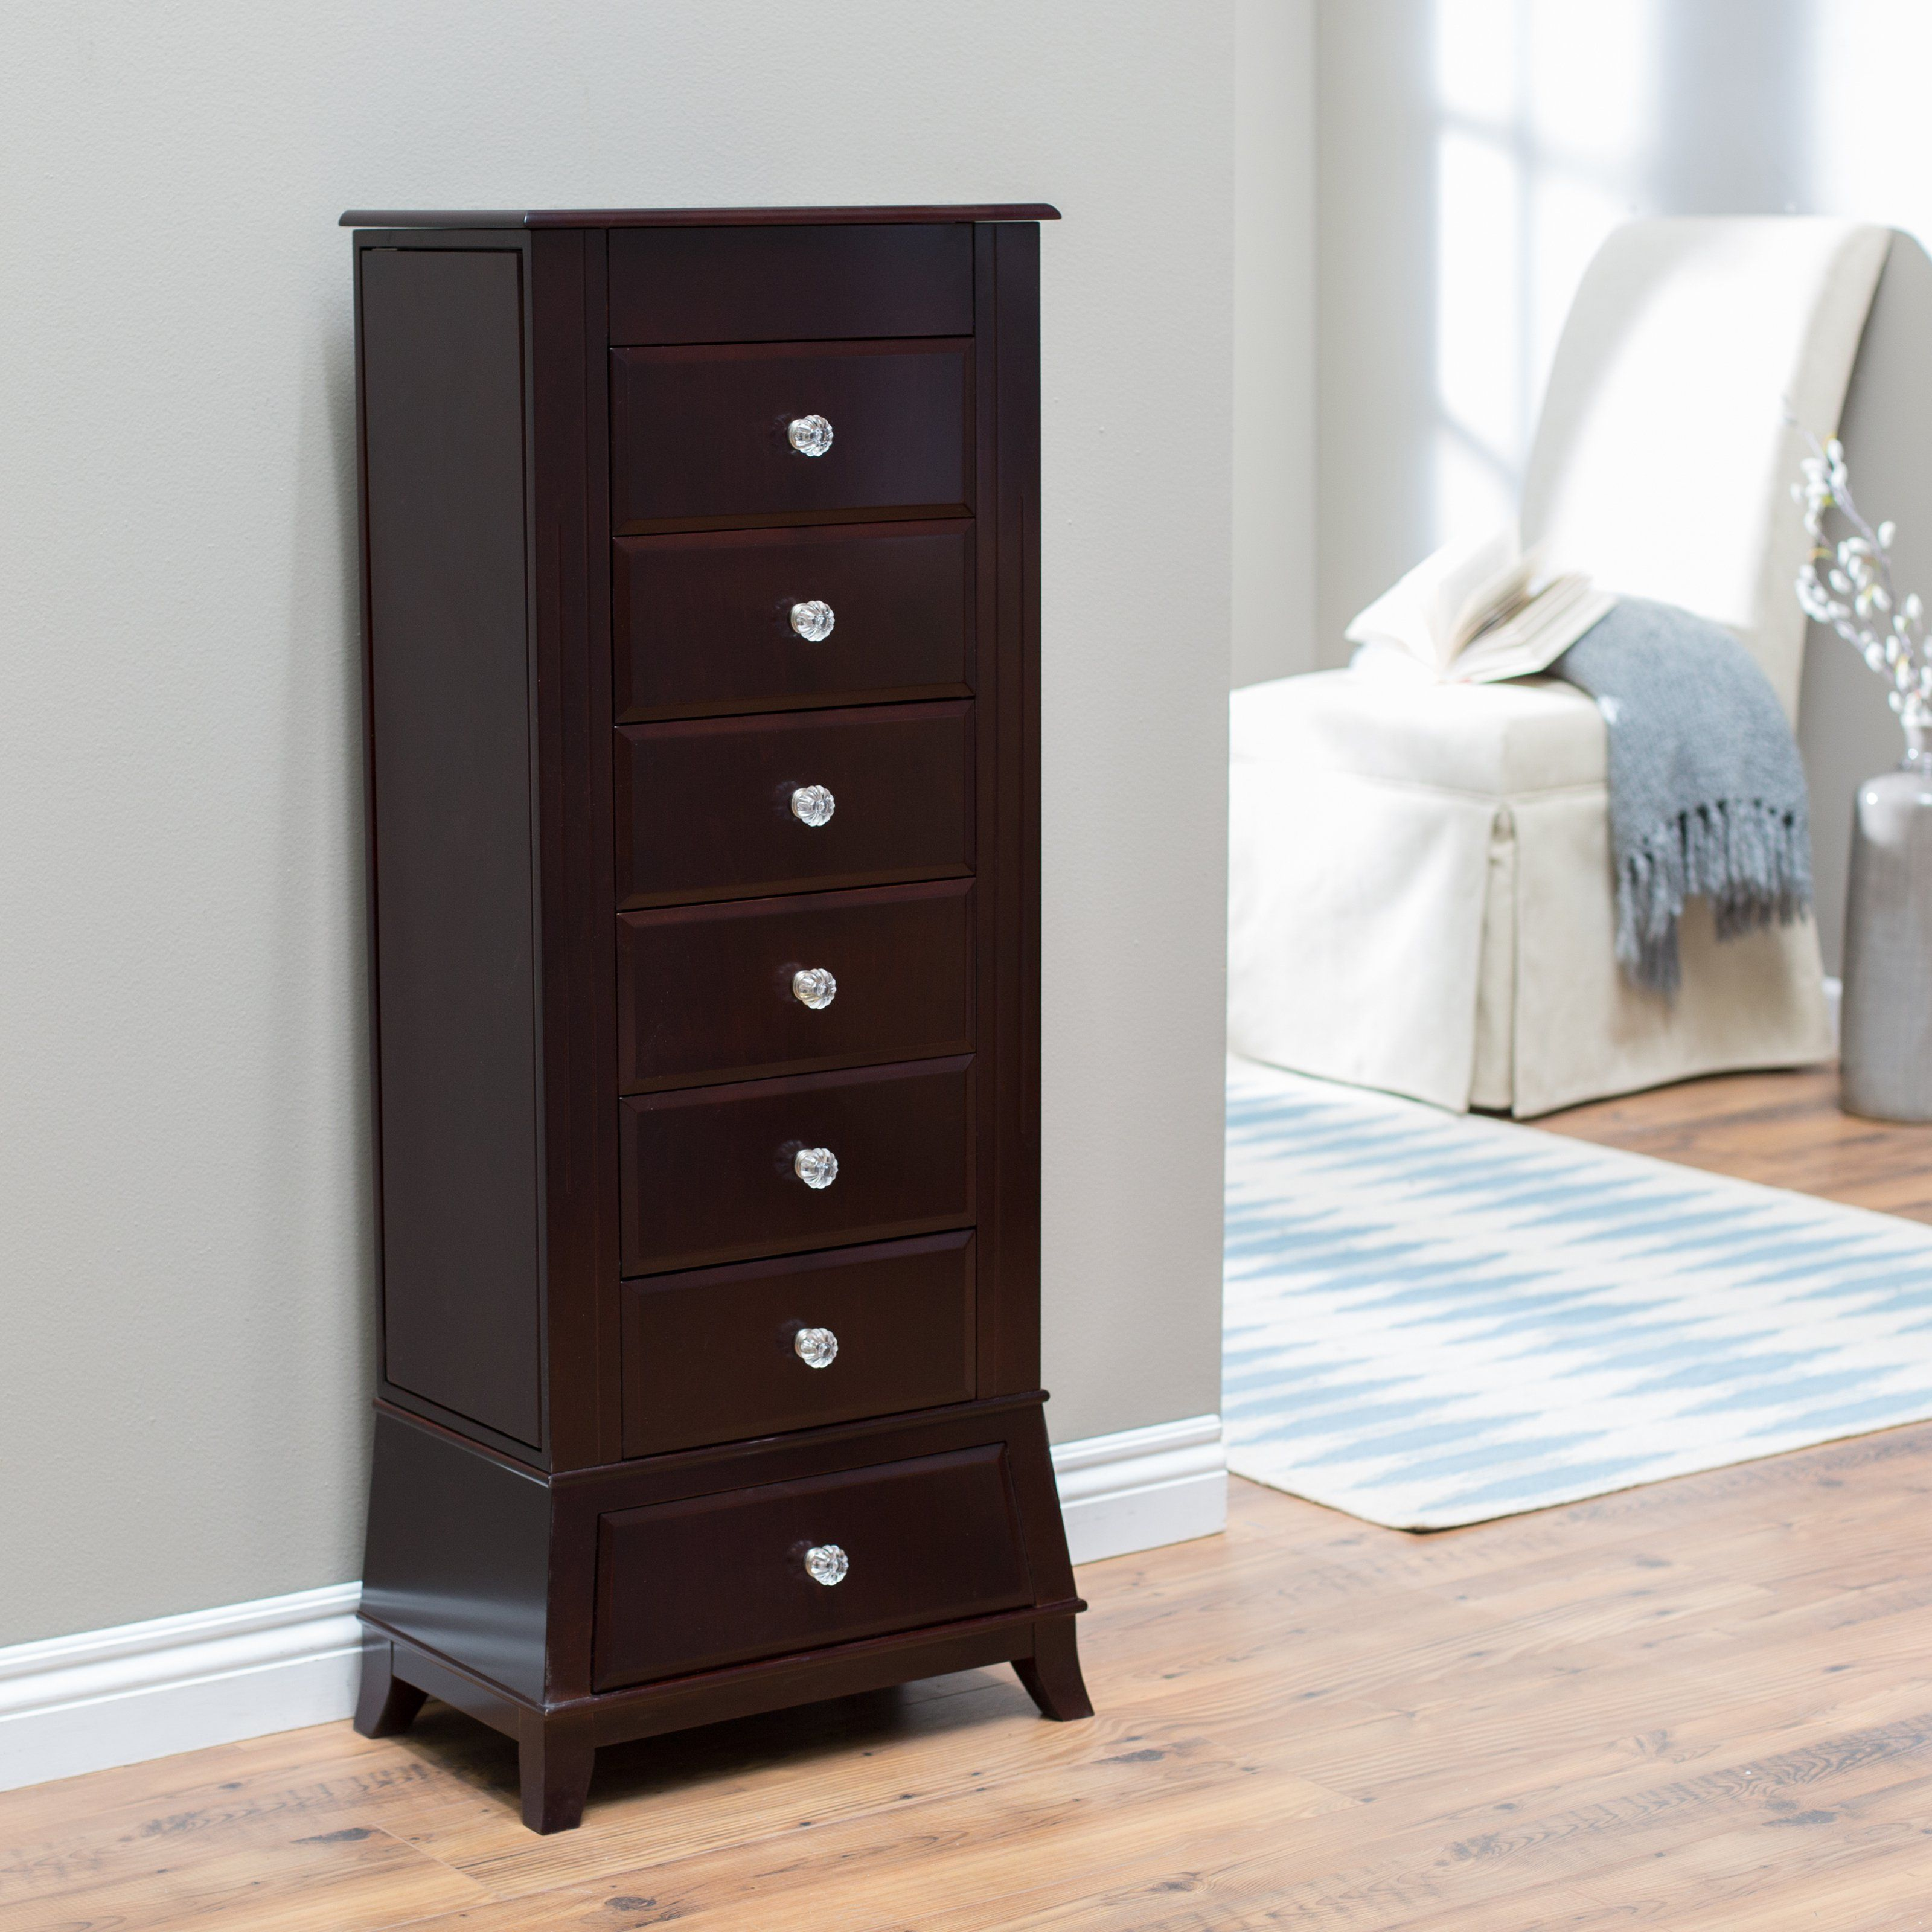 Holland House 2697 6 Drawer Jewelry Chest Royal Furniture